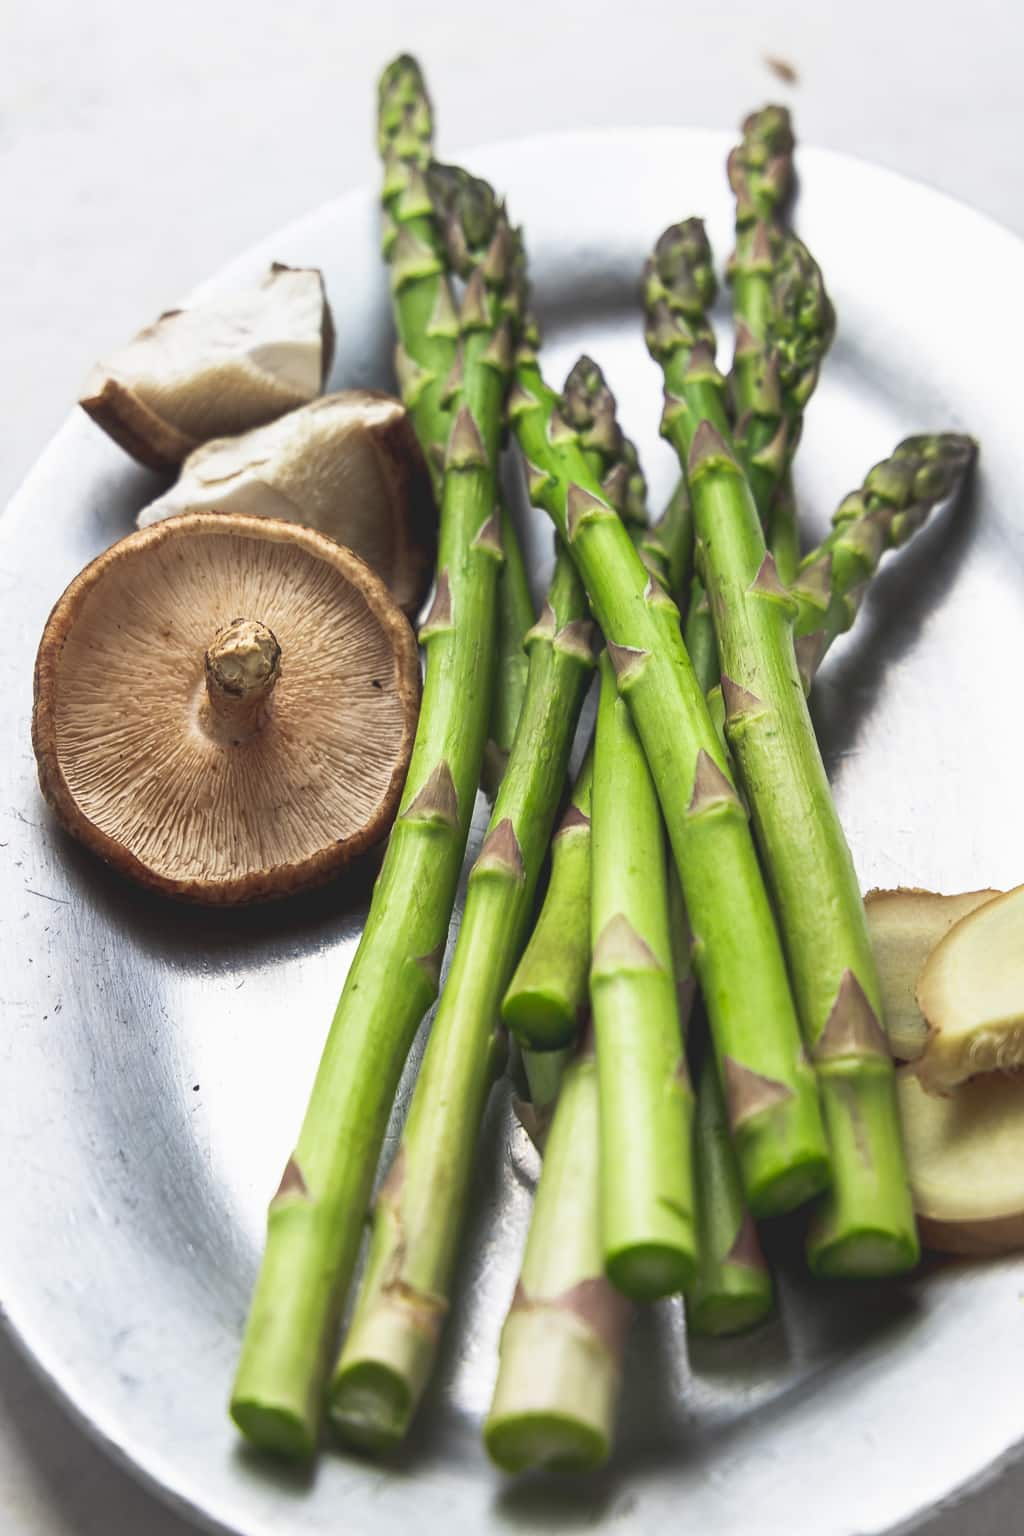 silver plate with asparagus spears and shiitake mushrooms